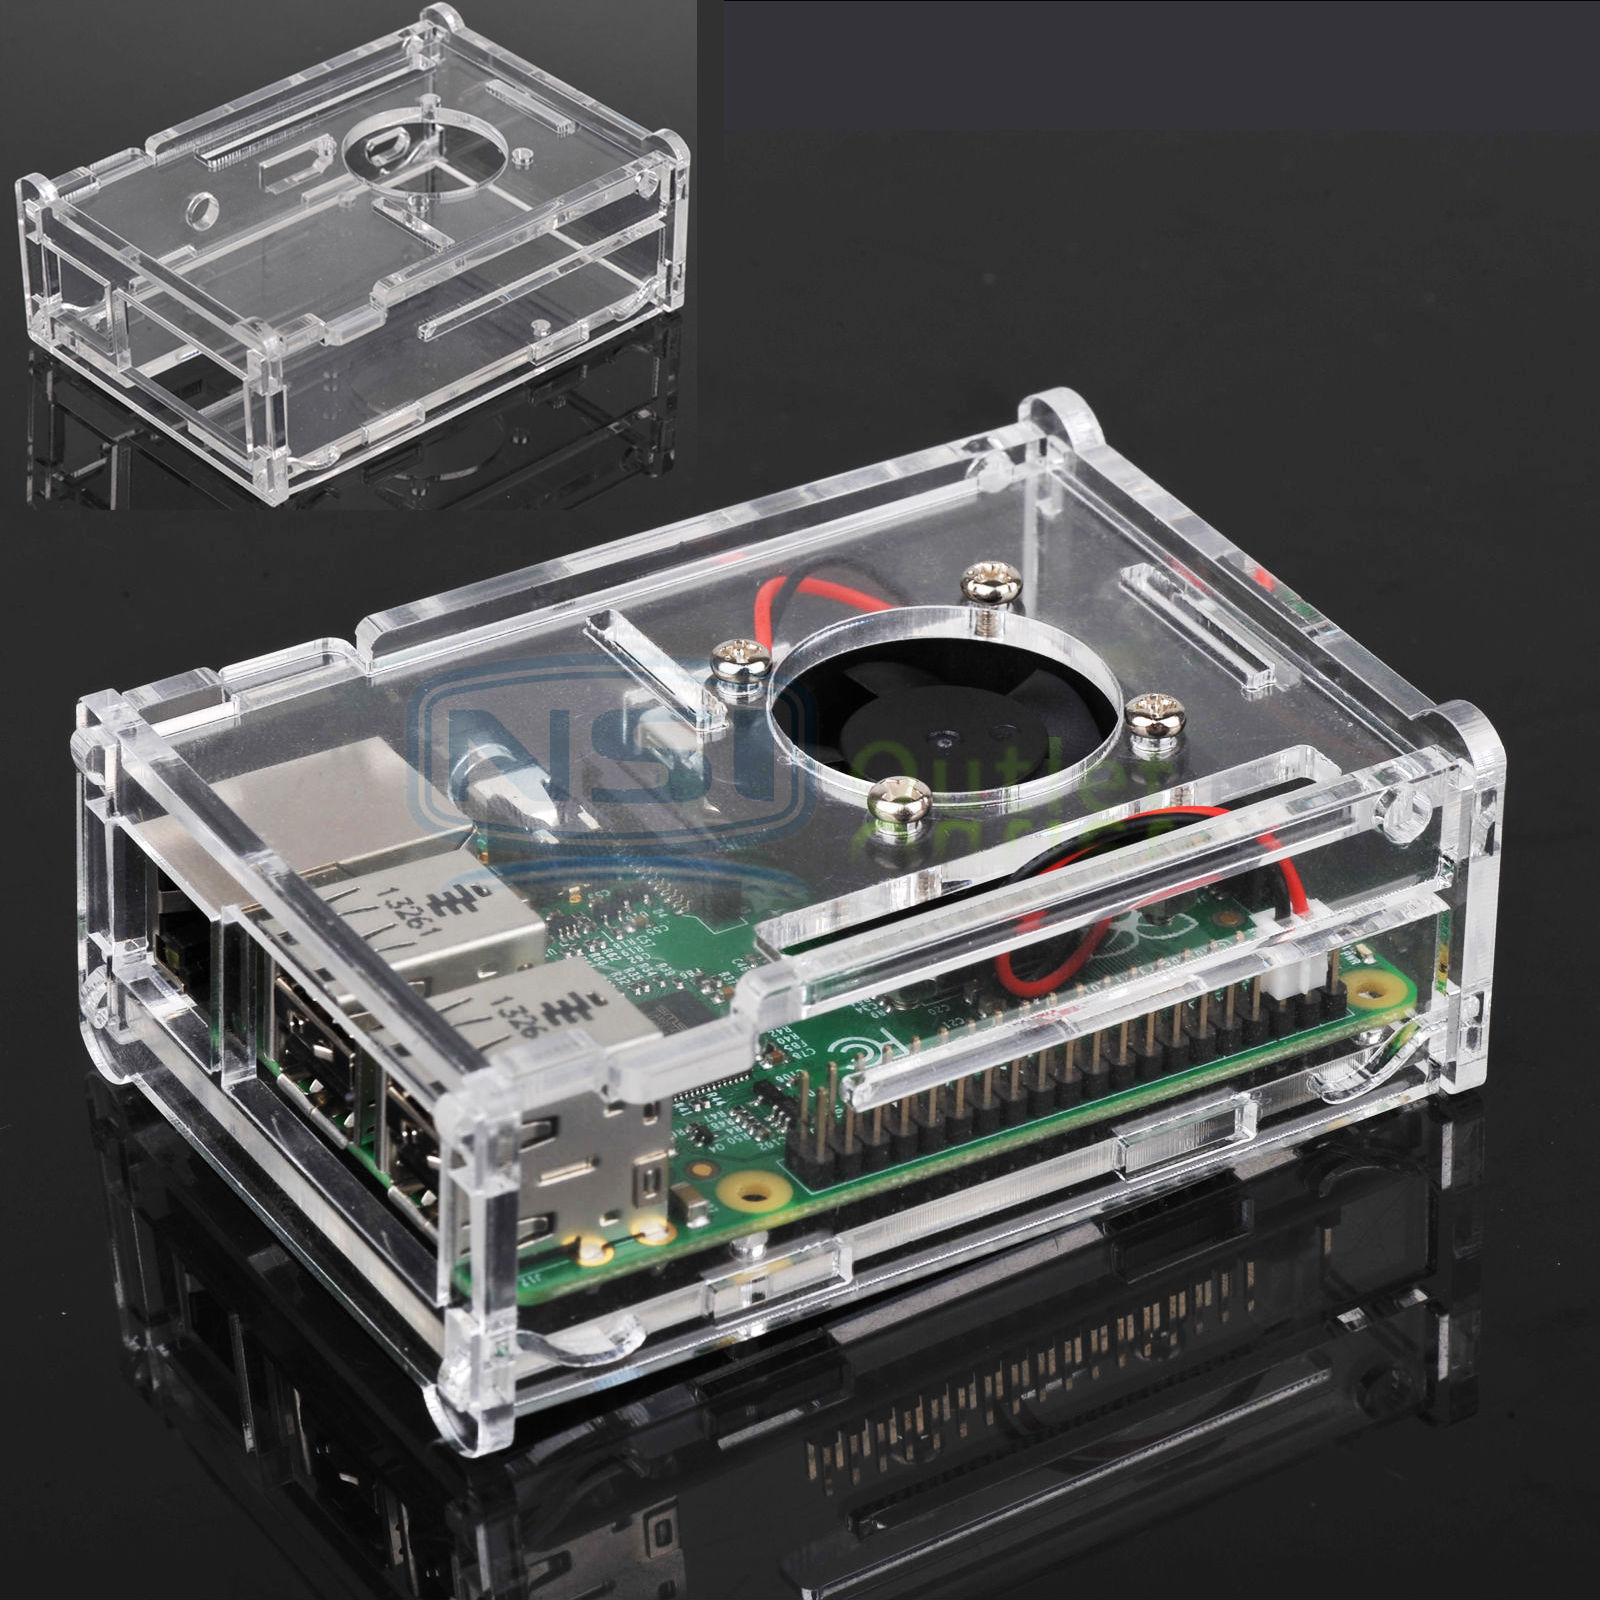 Clear-Case-Enclosure-Box-Cooling-Fan-Heatsink-For-Raspberry-Pi-B-2-3-Model-B thumbnail 29